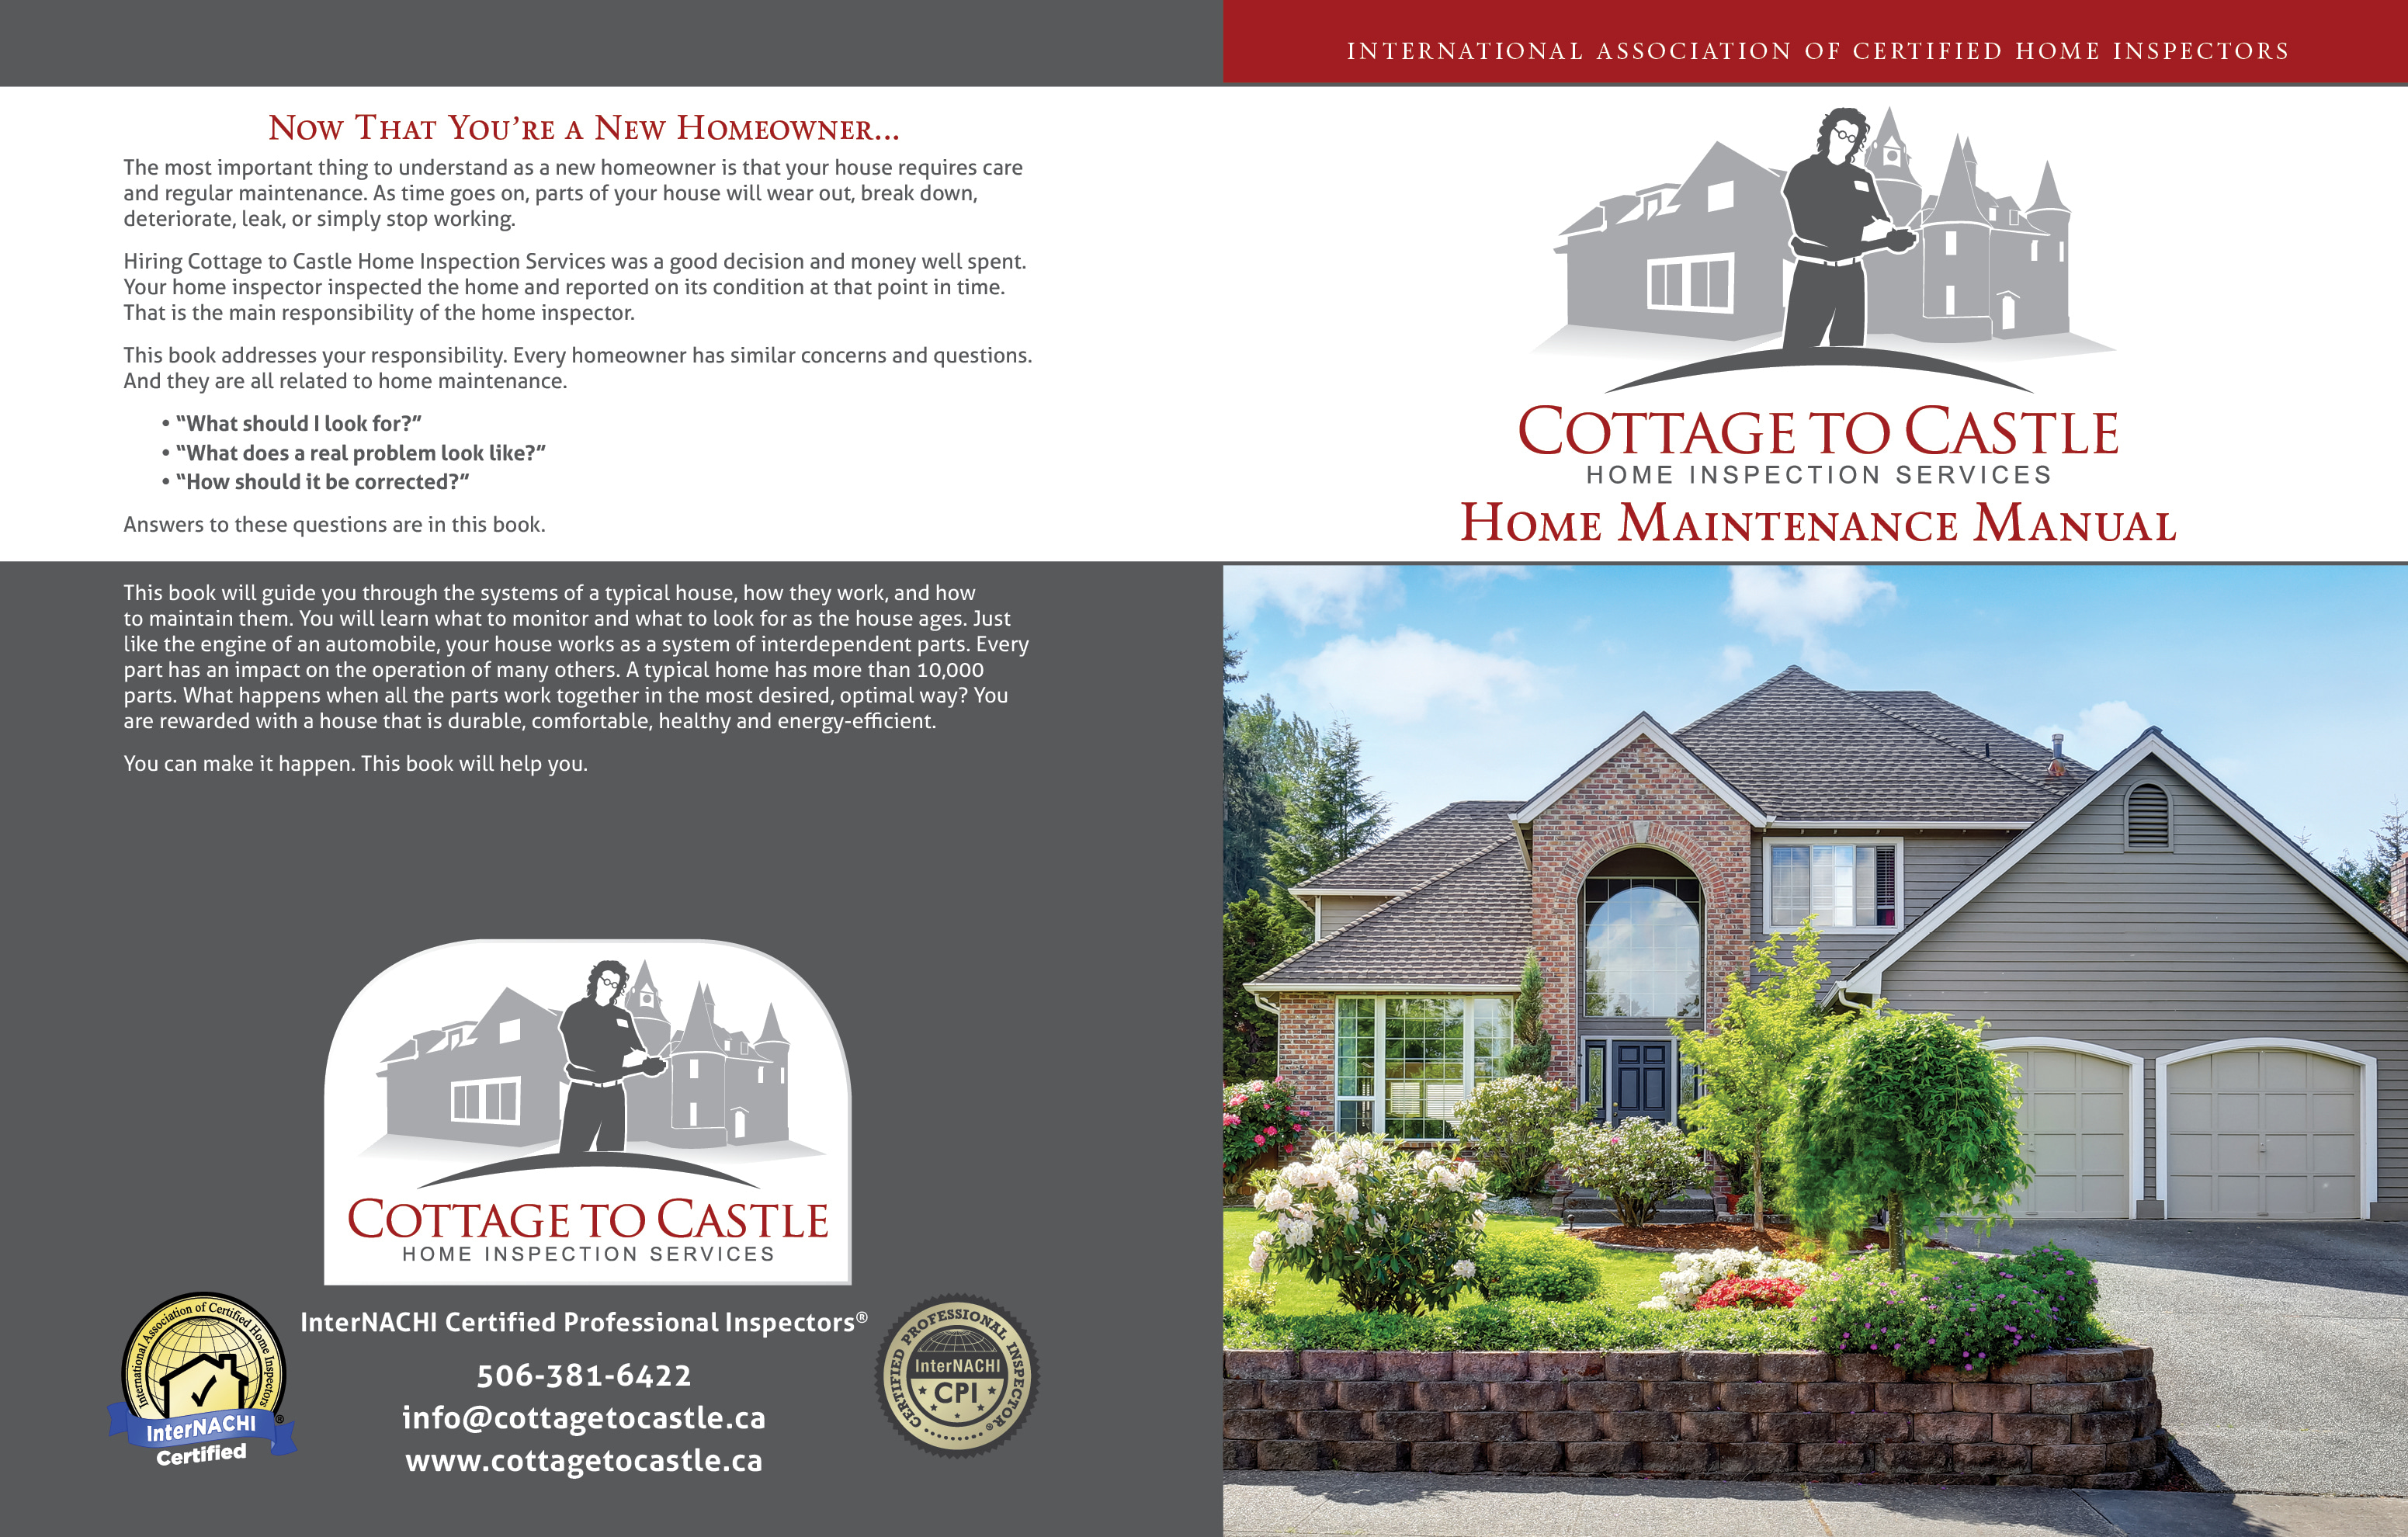 Custom Home Maintenance Book for Cottage to Castle Home Inspection Service